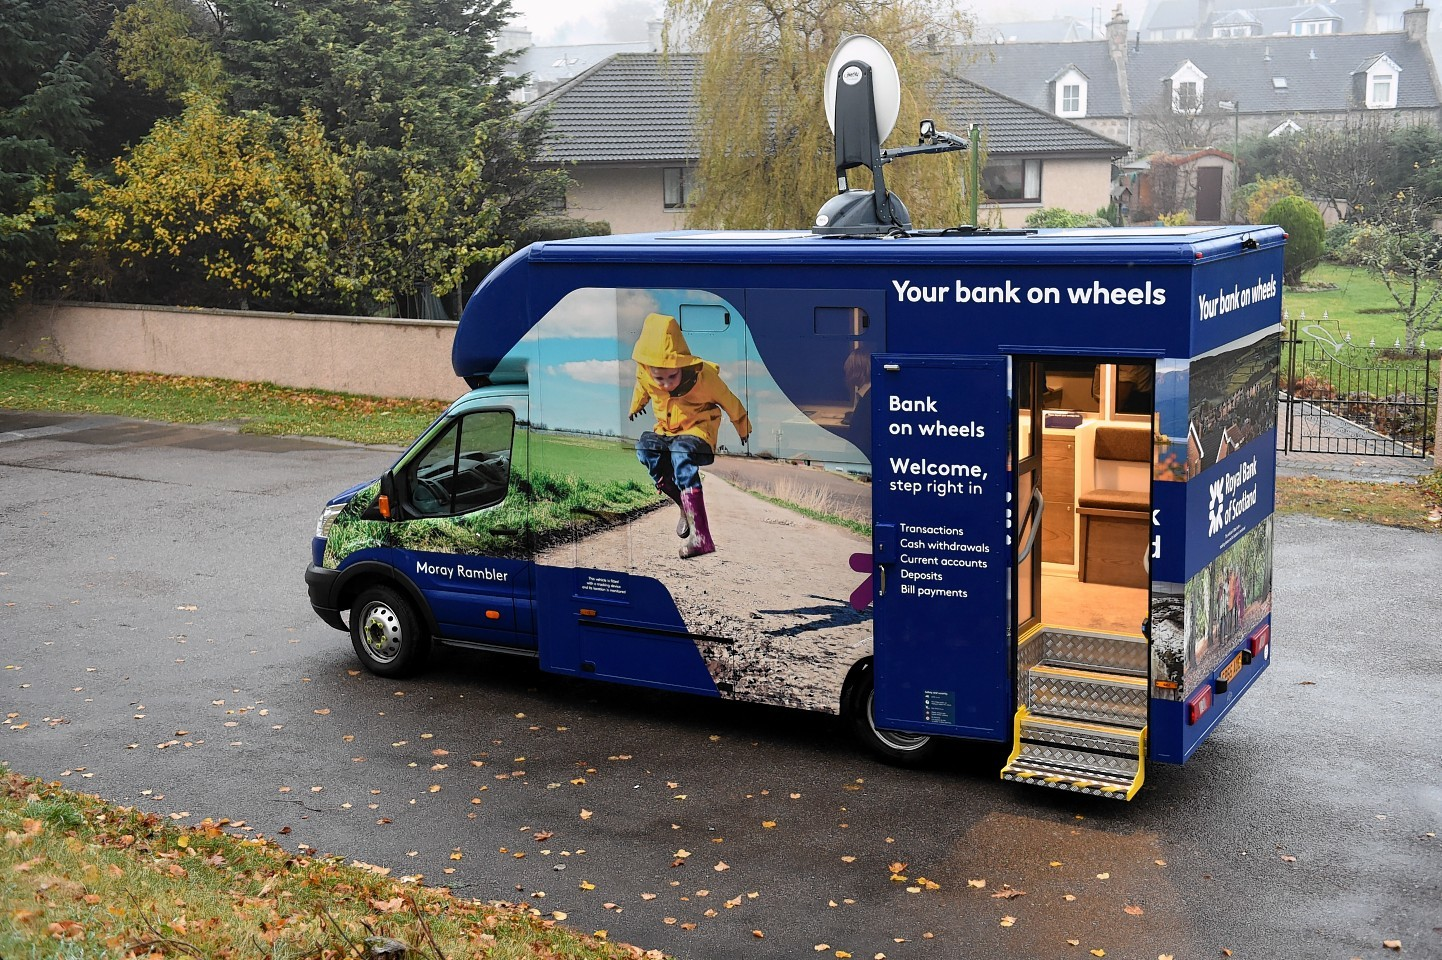 The Royal Bank Of Scotland mobile bank. Picture by Gordon Lennox